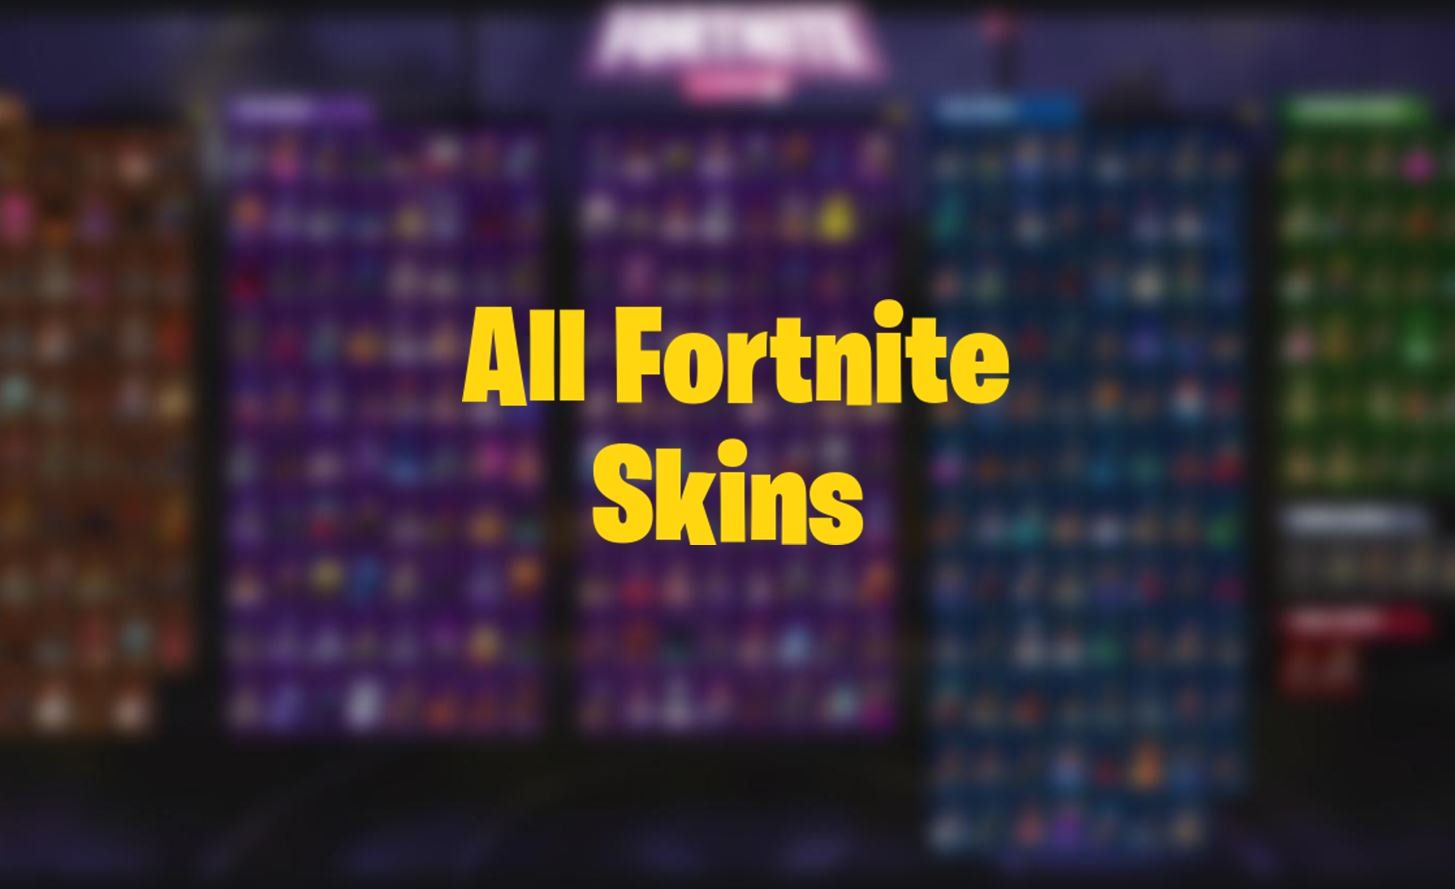 A Reddit user has created a graphic showing all Fortnite